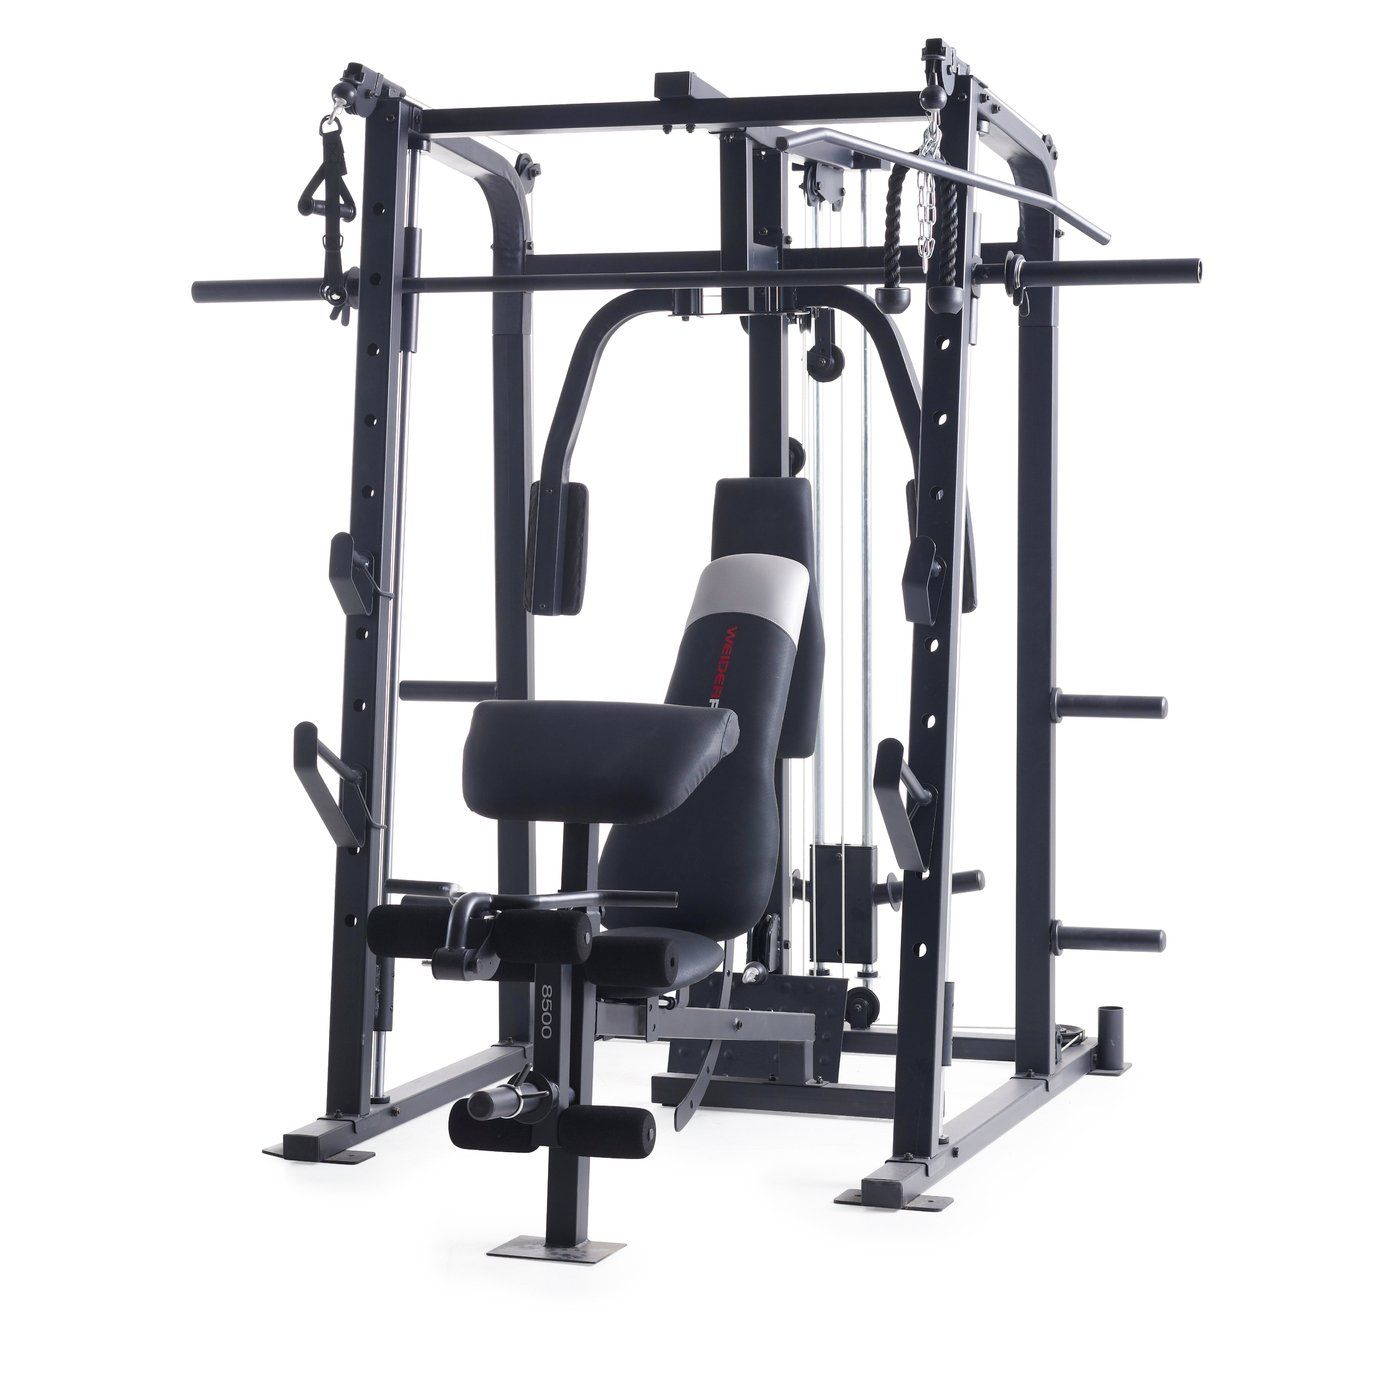 Buy Men S Health Power Rig Multi Gyms Argos In 2020 Home Gym Set Mens Health Cable Workout